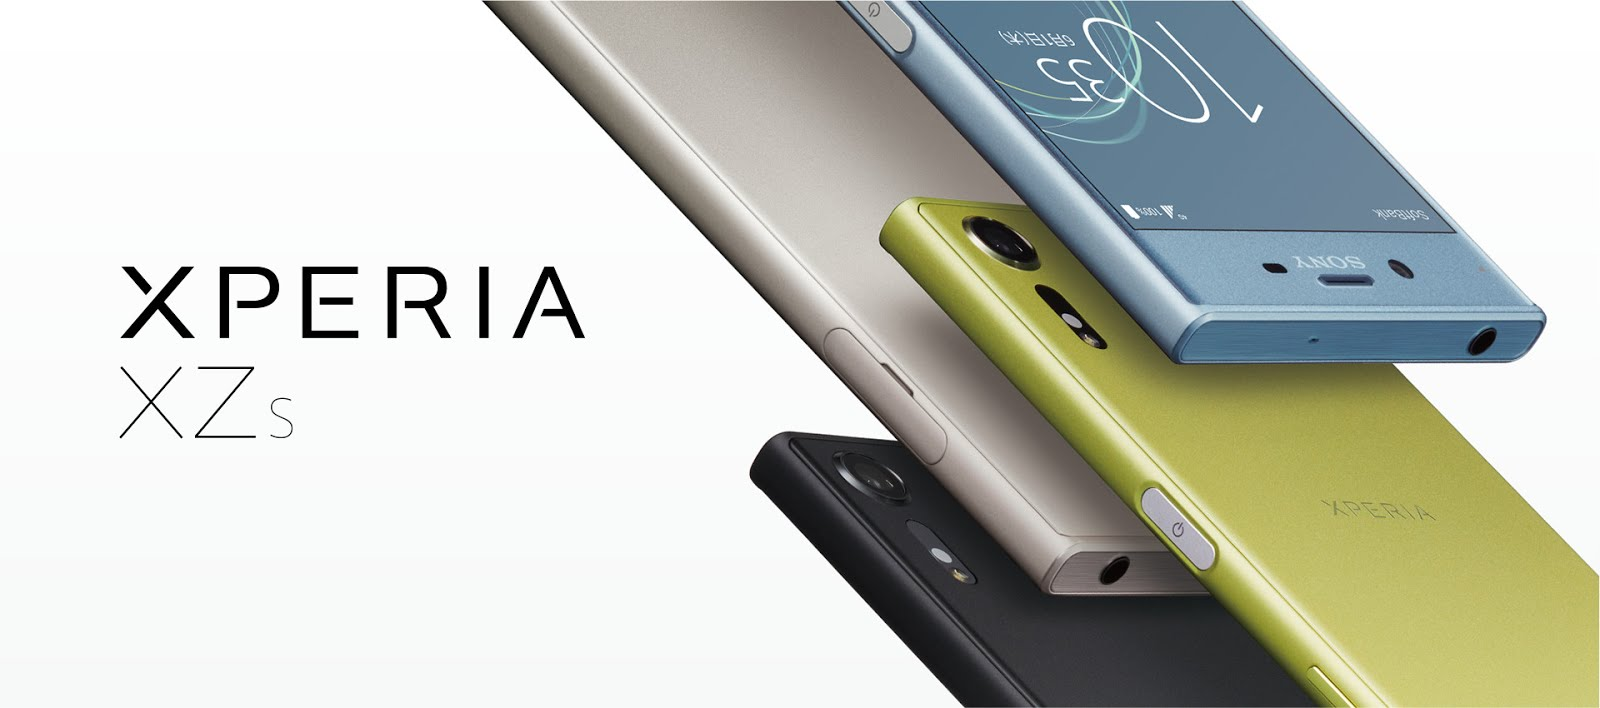 How to root Sony Xperia XZs & Install TWRP Recovery - 100